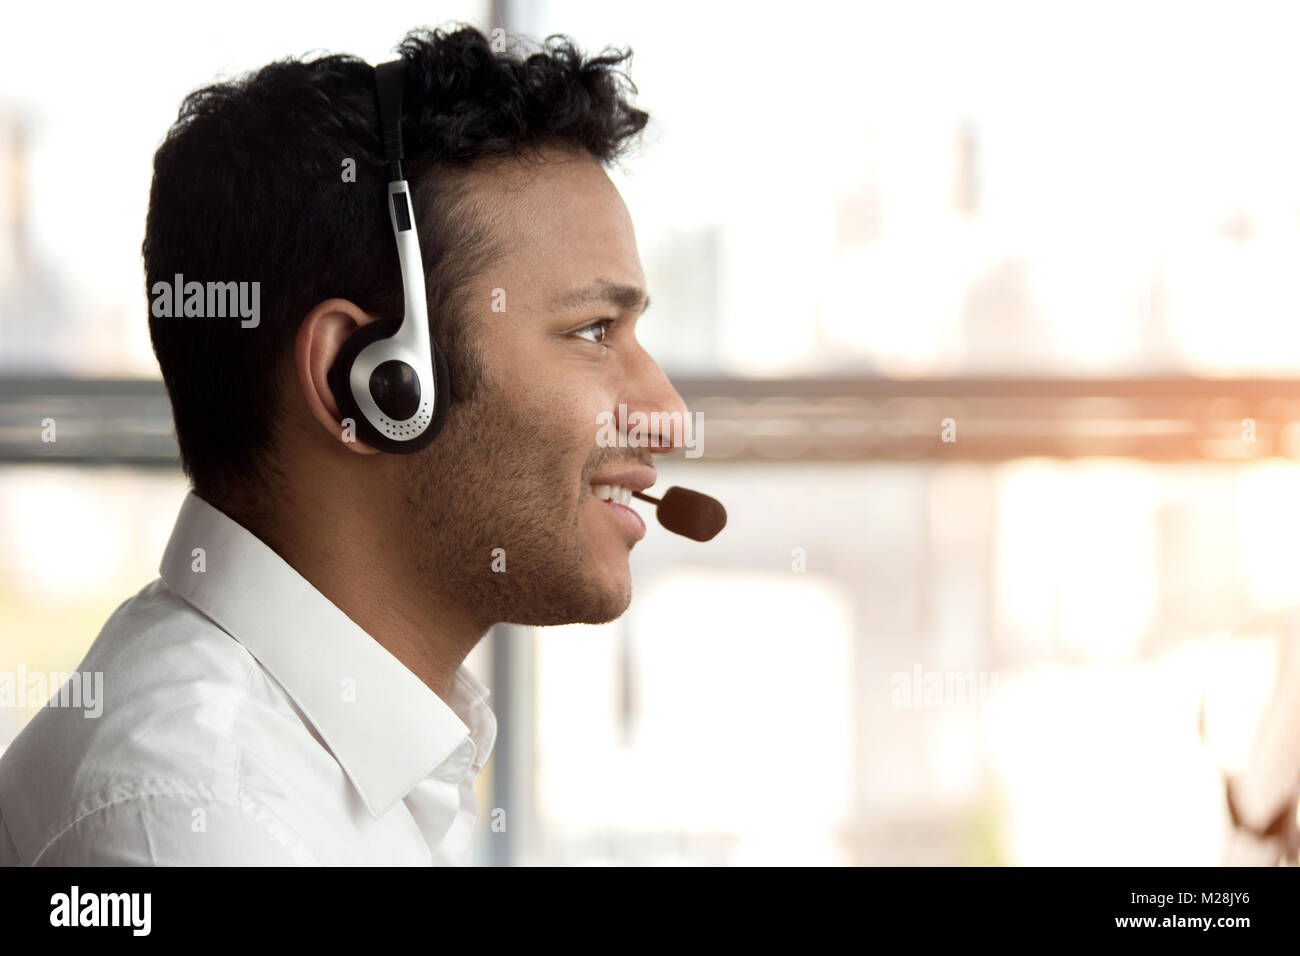 Side view stubbled black man with headset. Smiling black indian man with headset, close up. - Stock Image